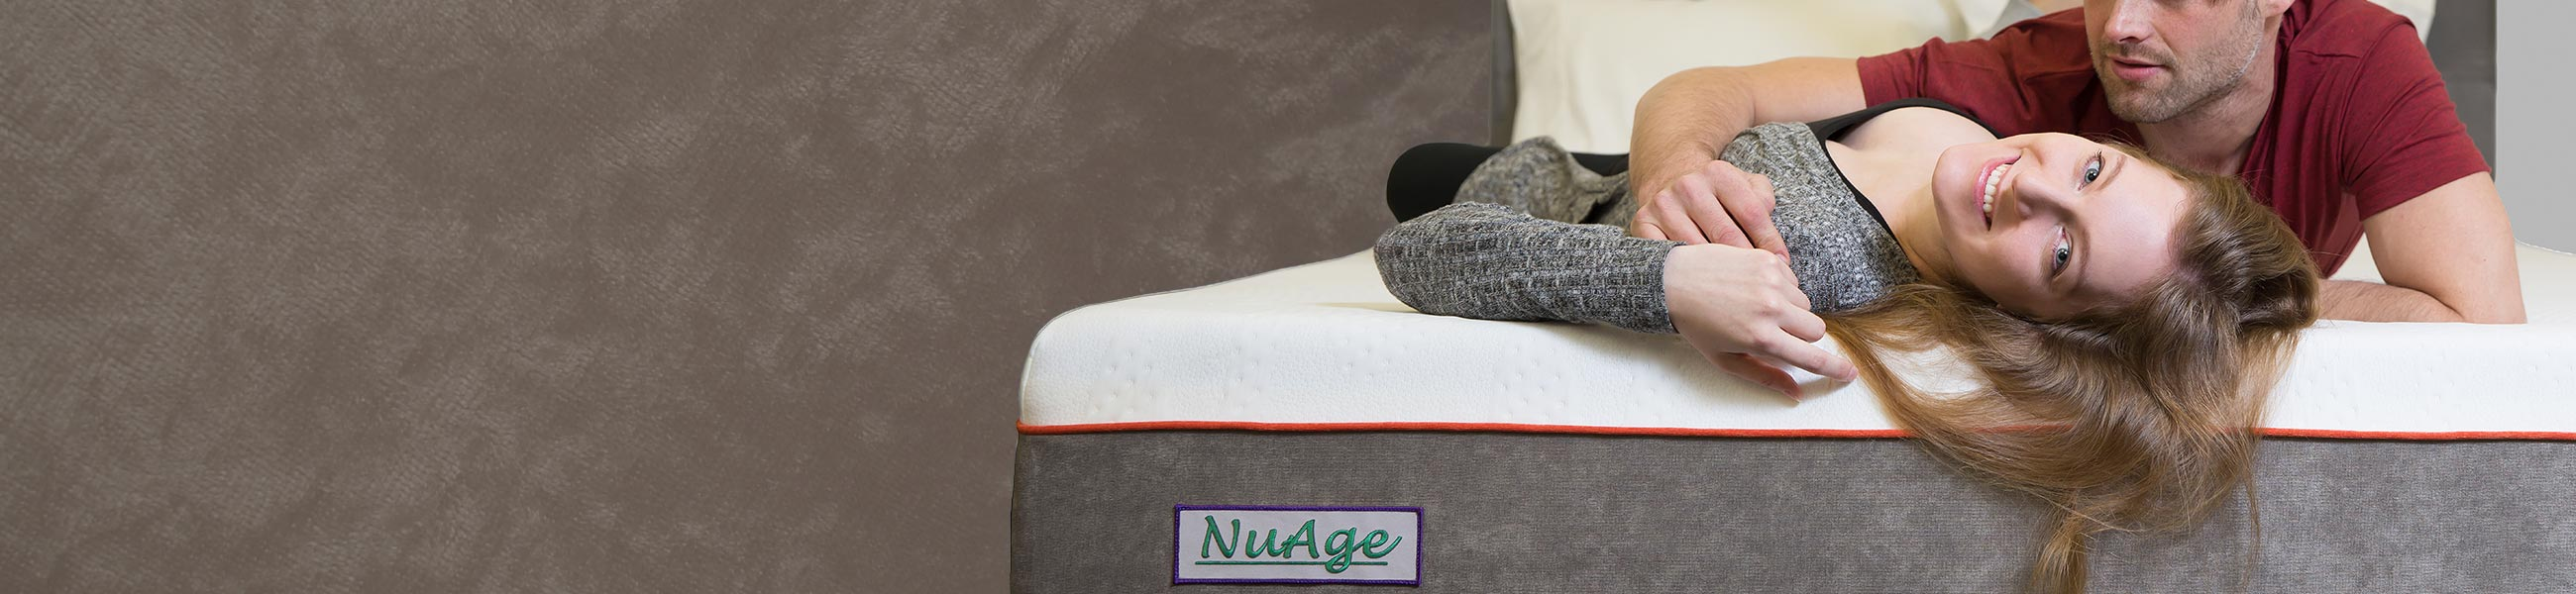 nuage-foam-inc-mattresses